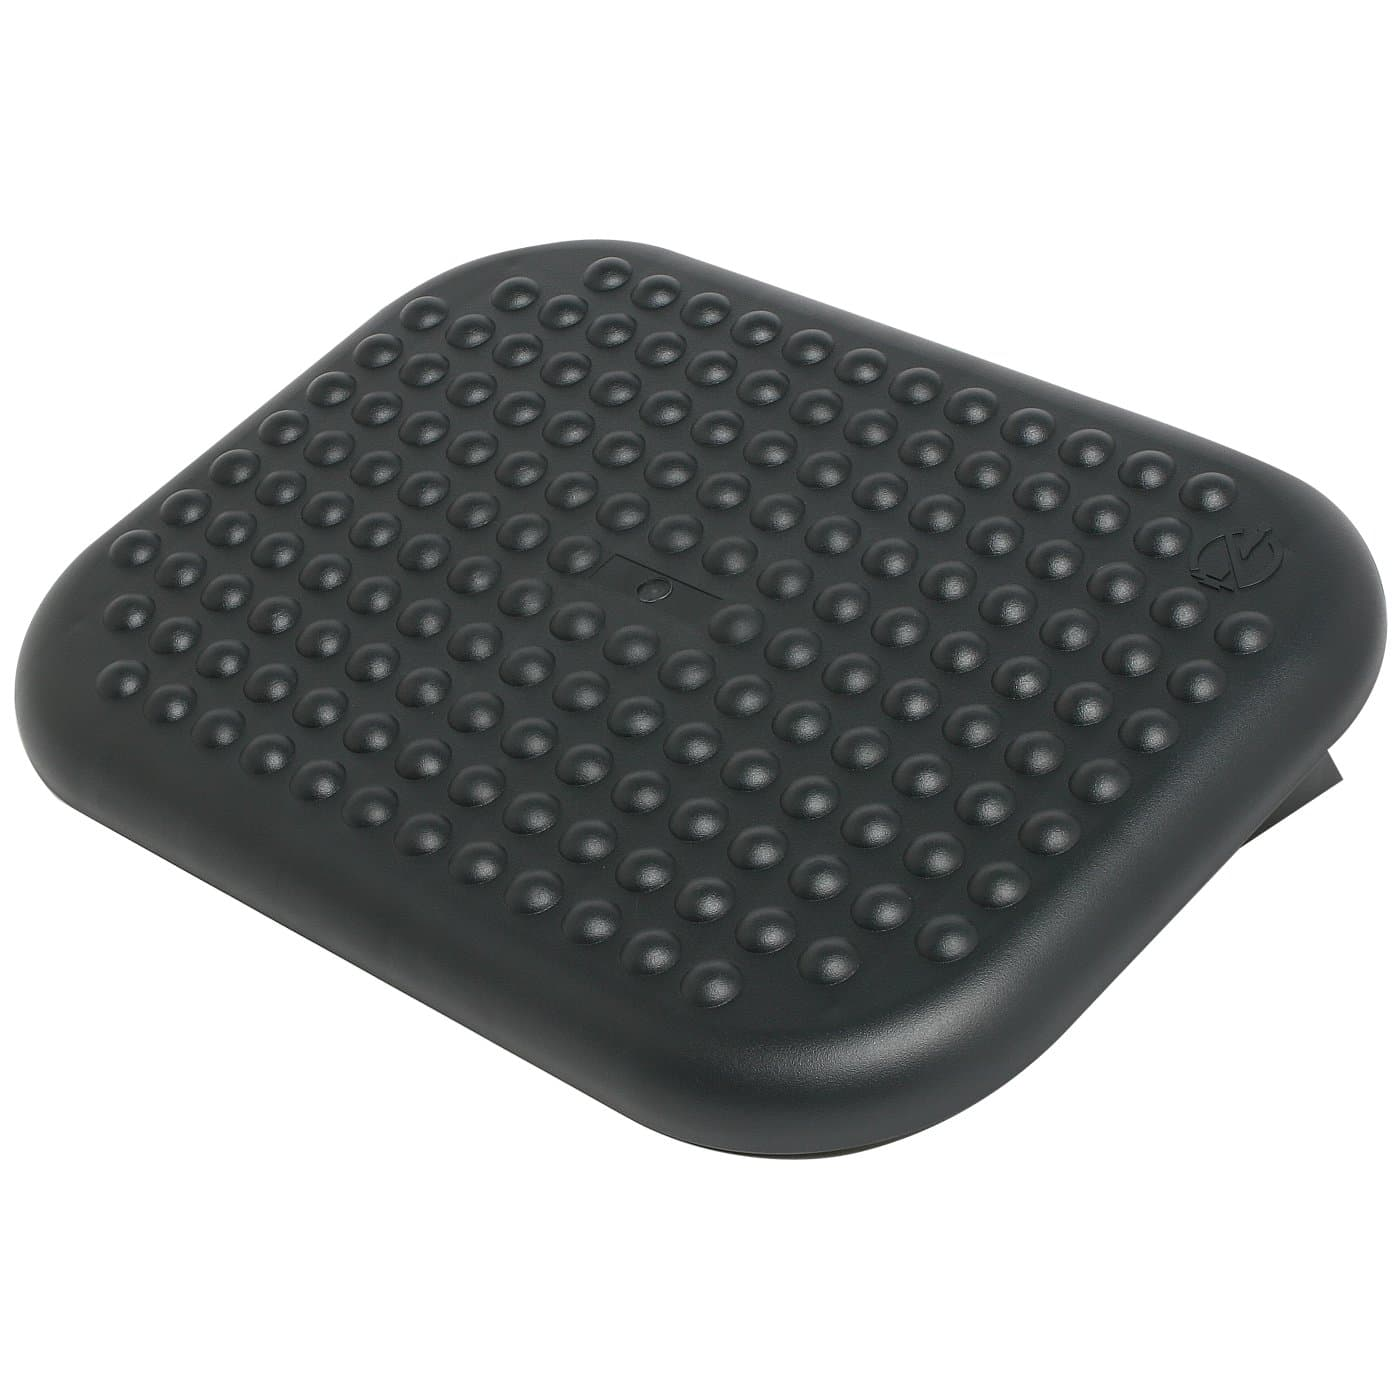 Kensington Austrailia Products Ergonomics Foot